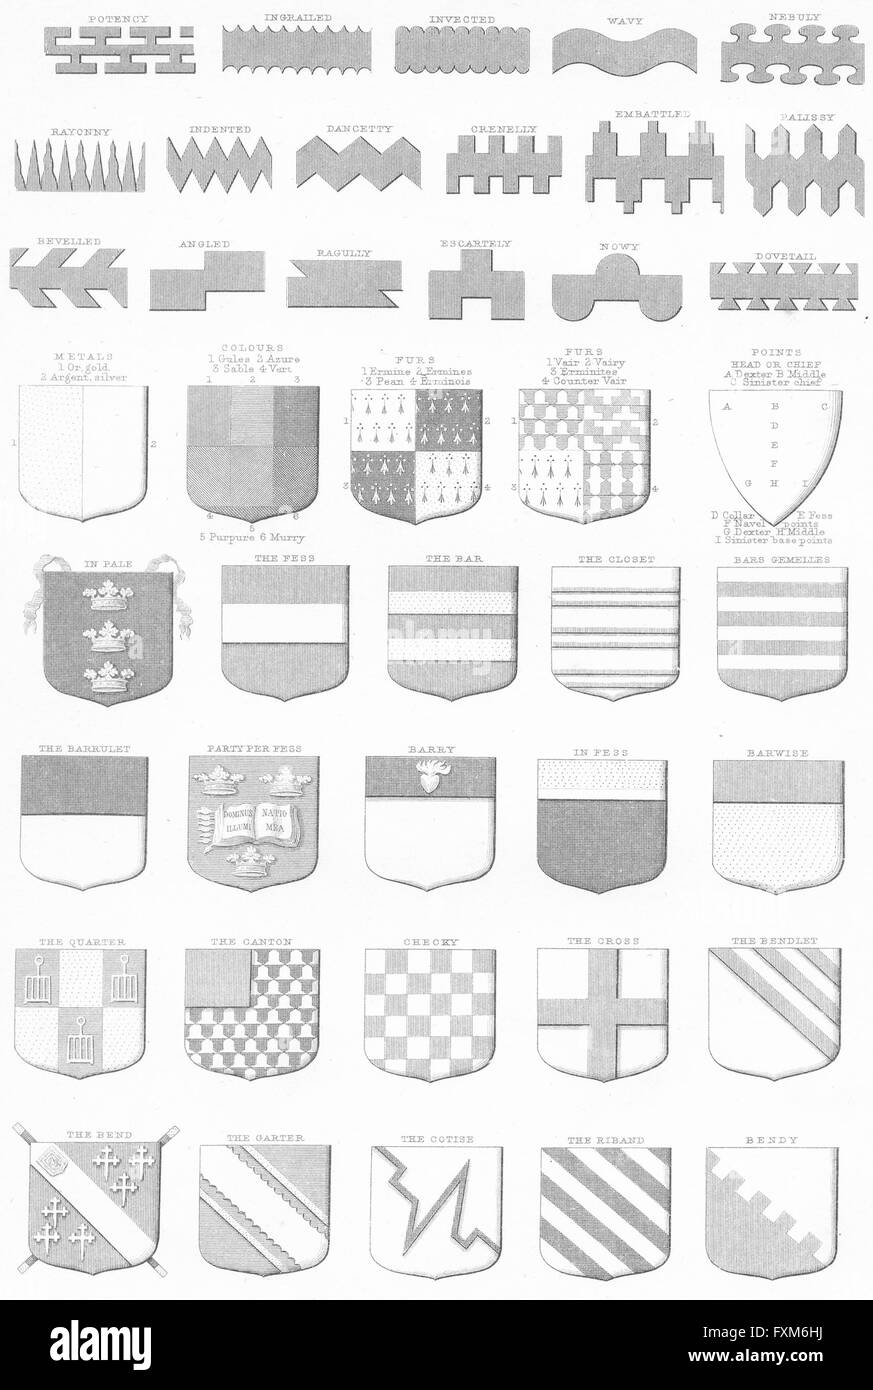 PEERS: Heraldry Charges in Blazonry I, antique print c1849 - Stock Image